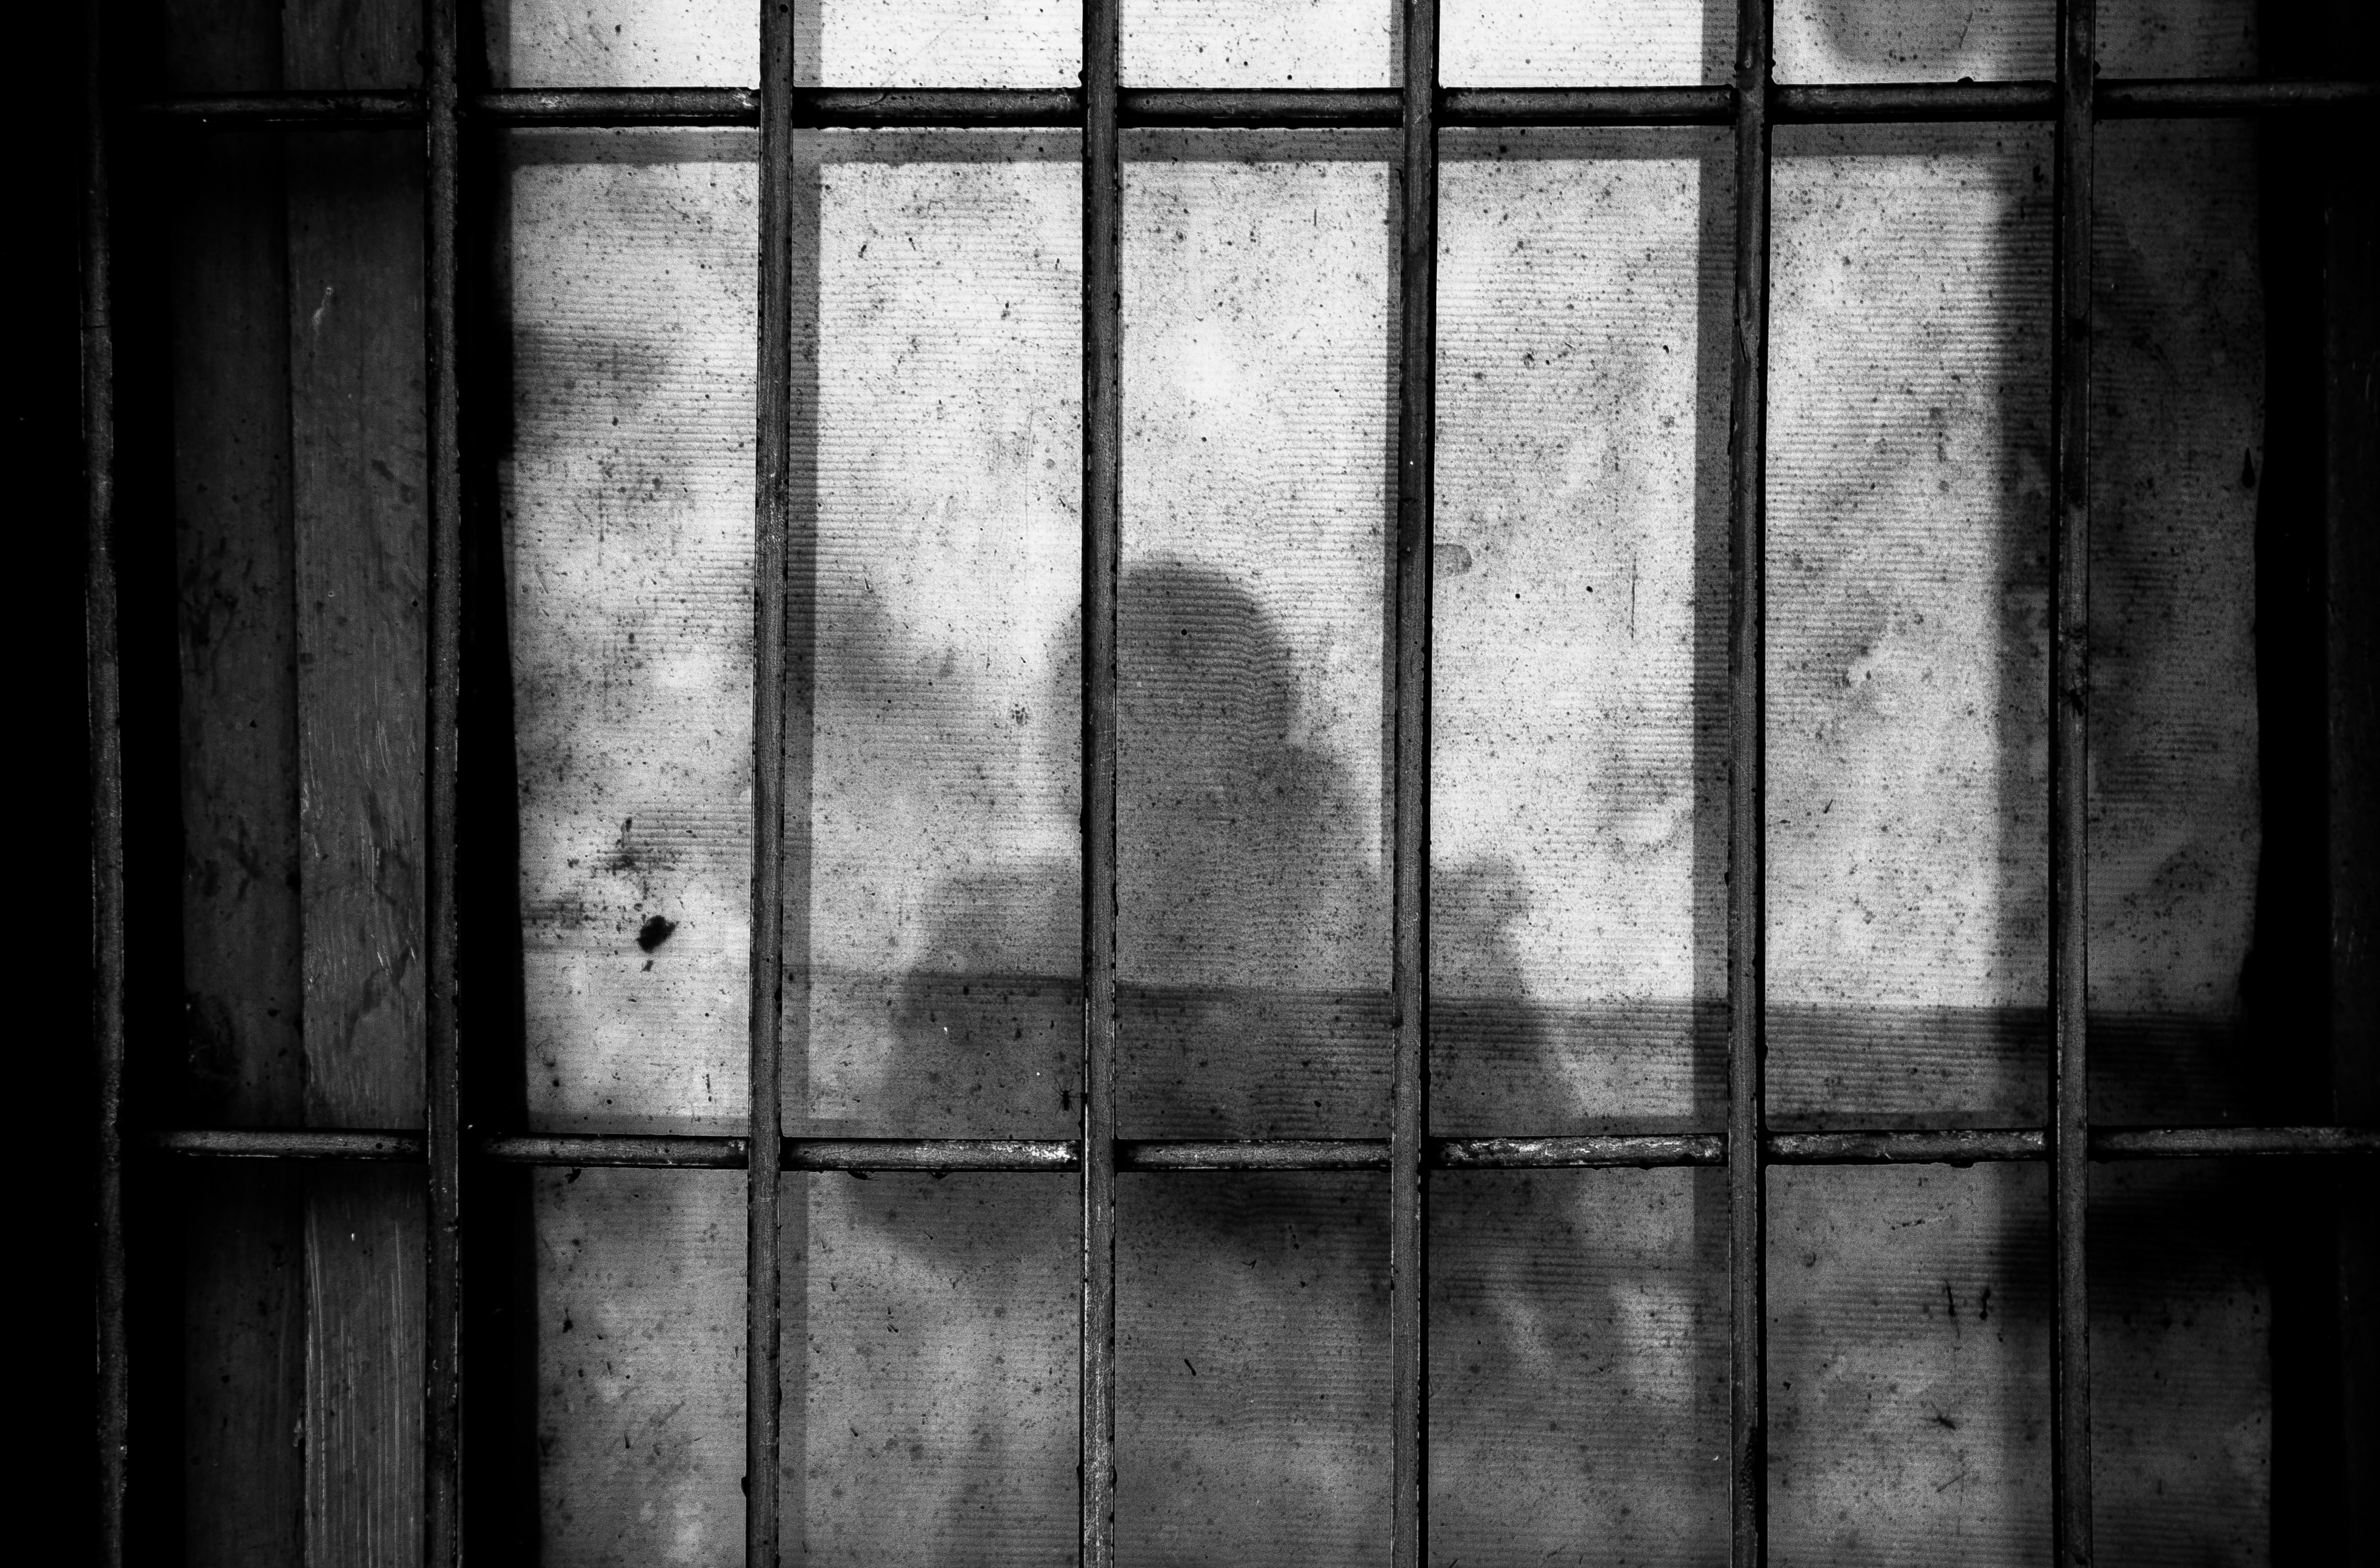 Improving the criminal justice system for women